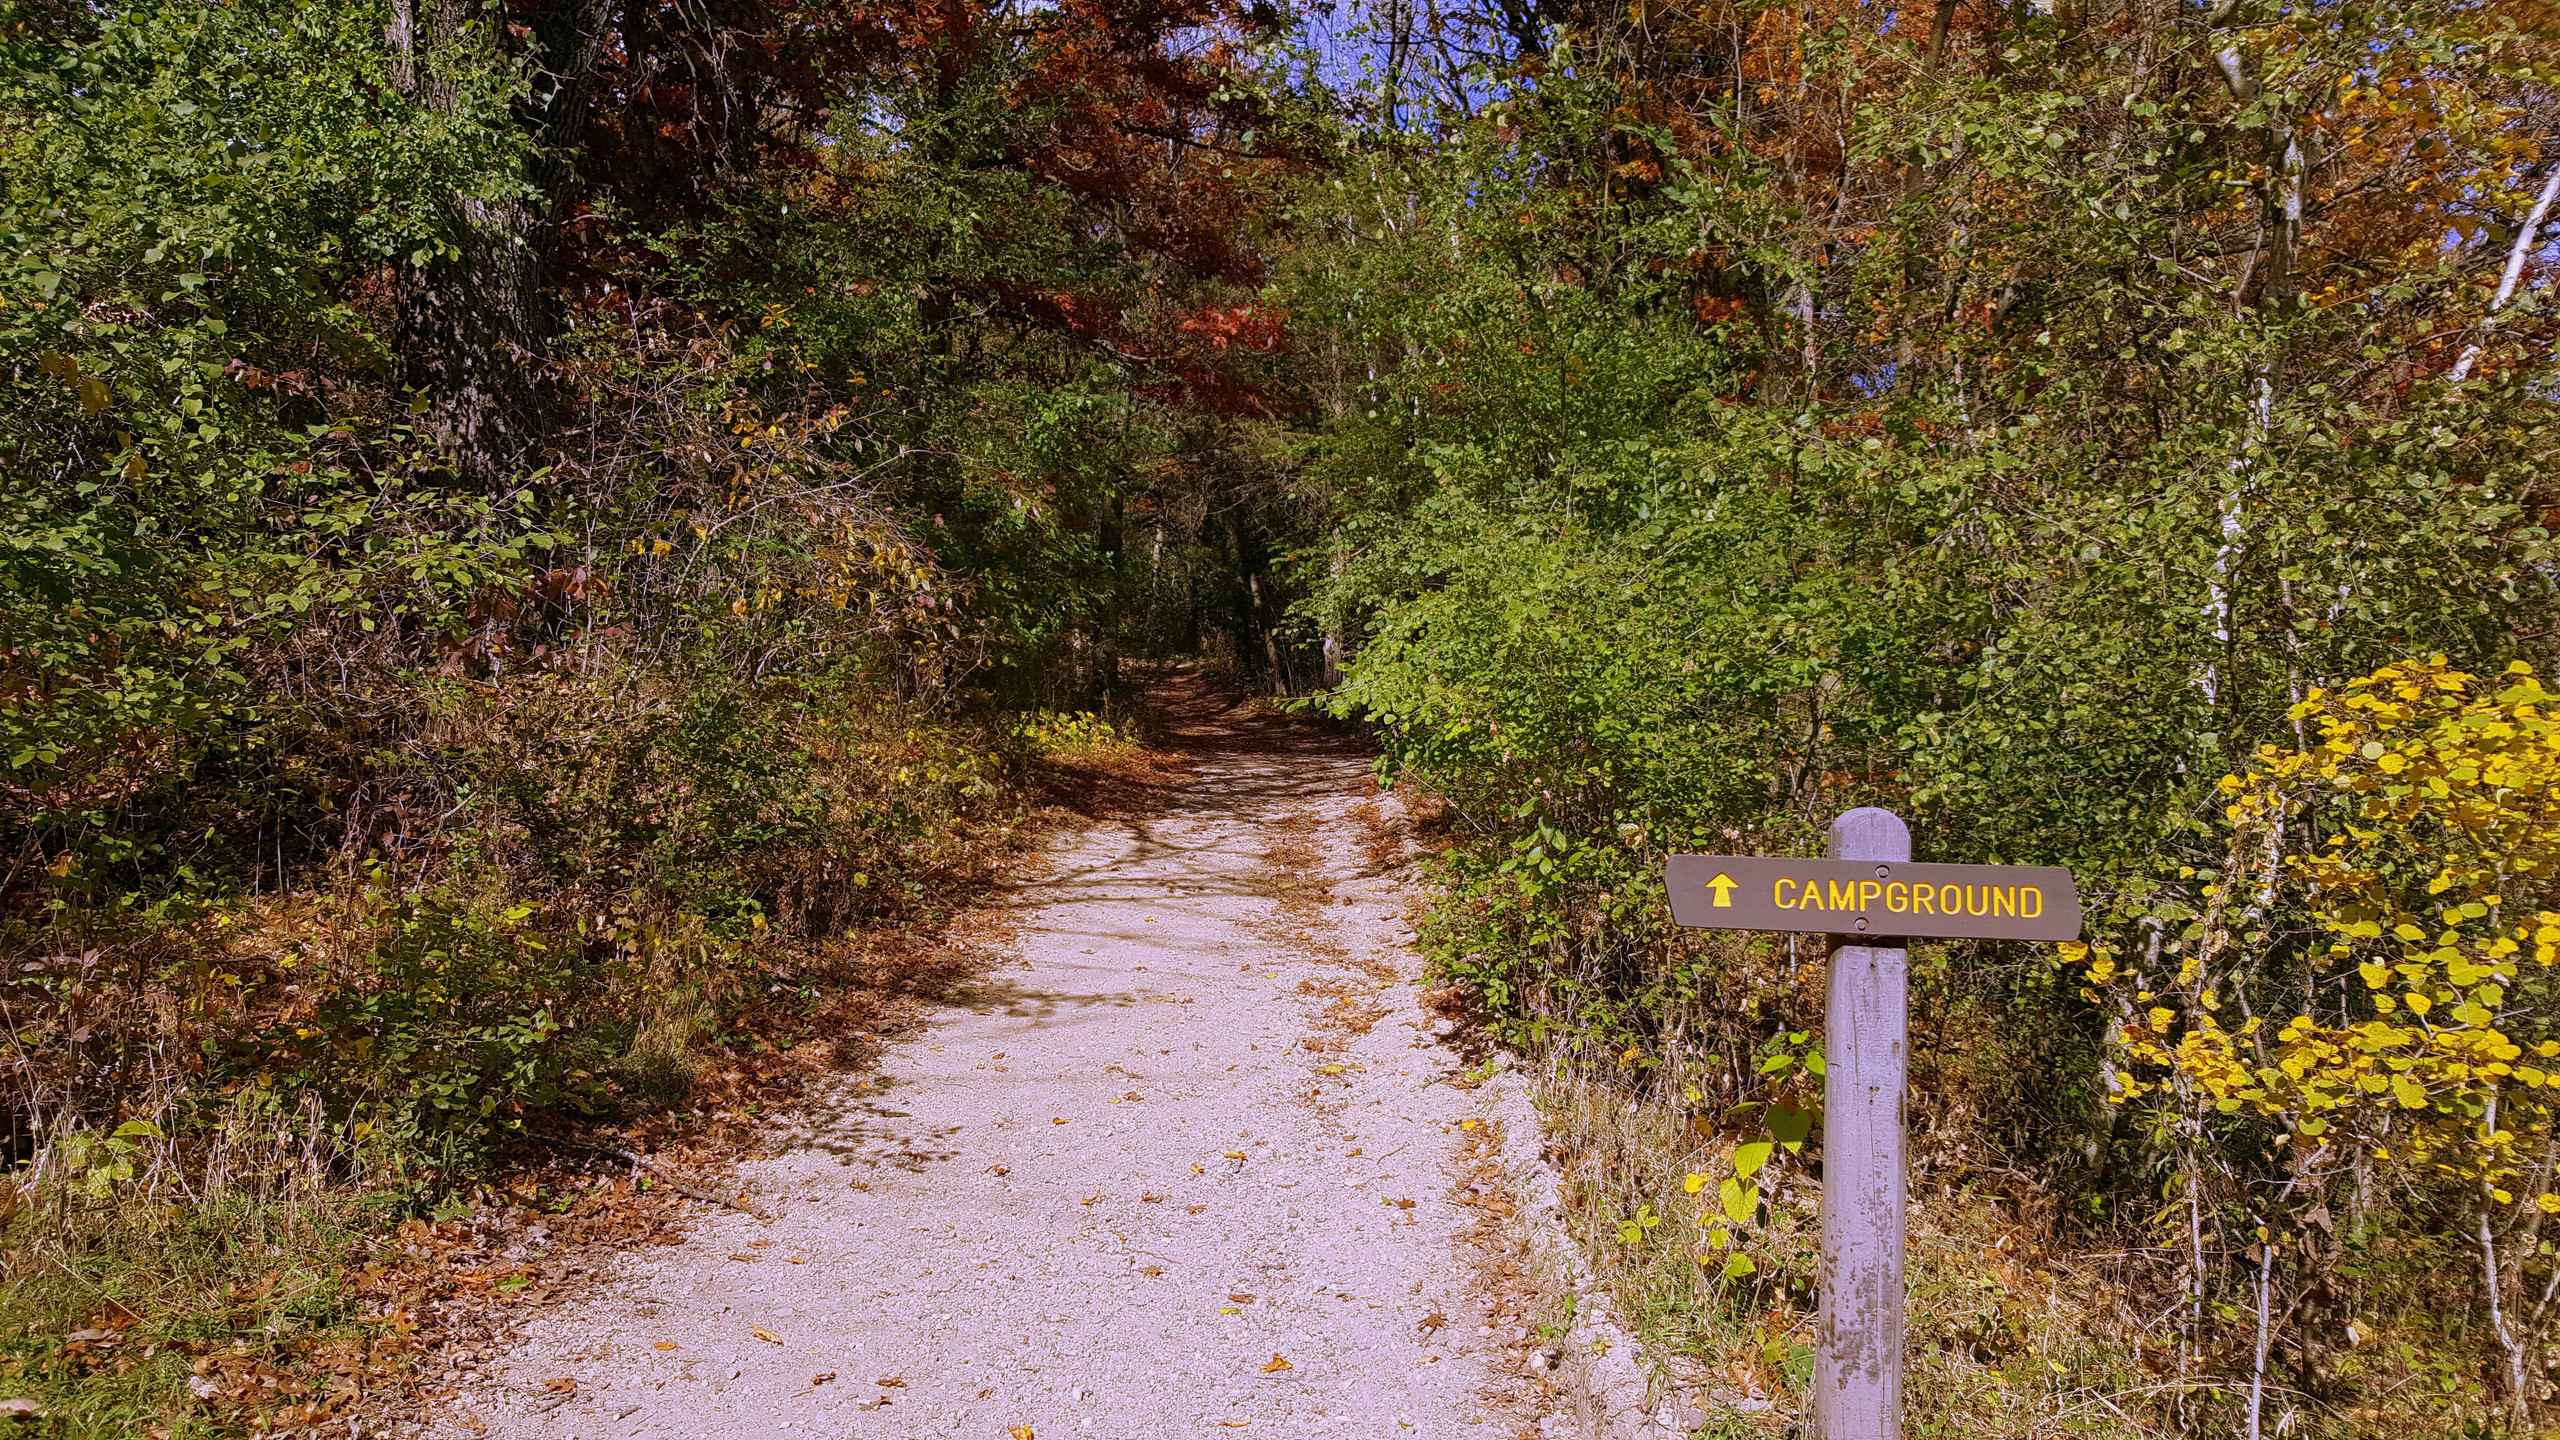 Trail to the campground